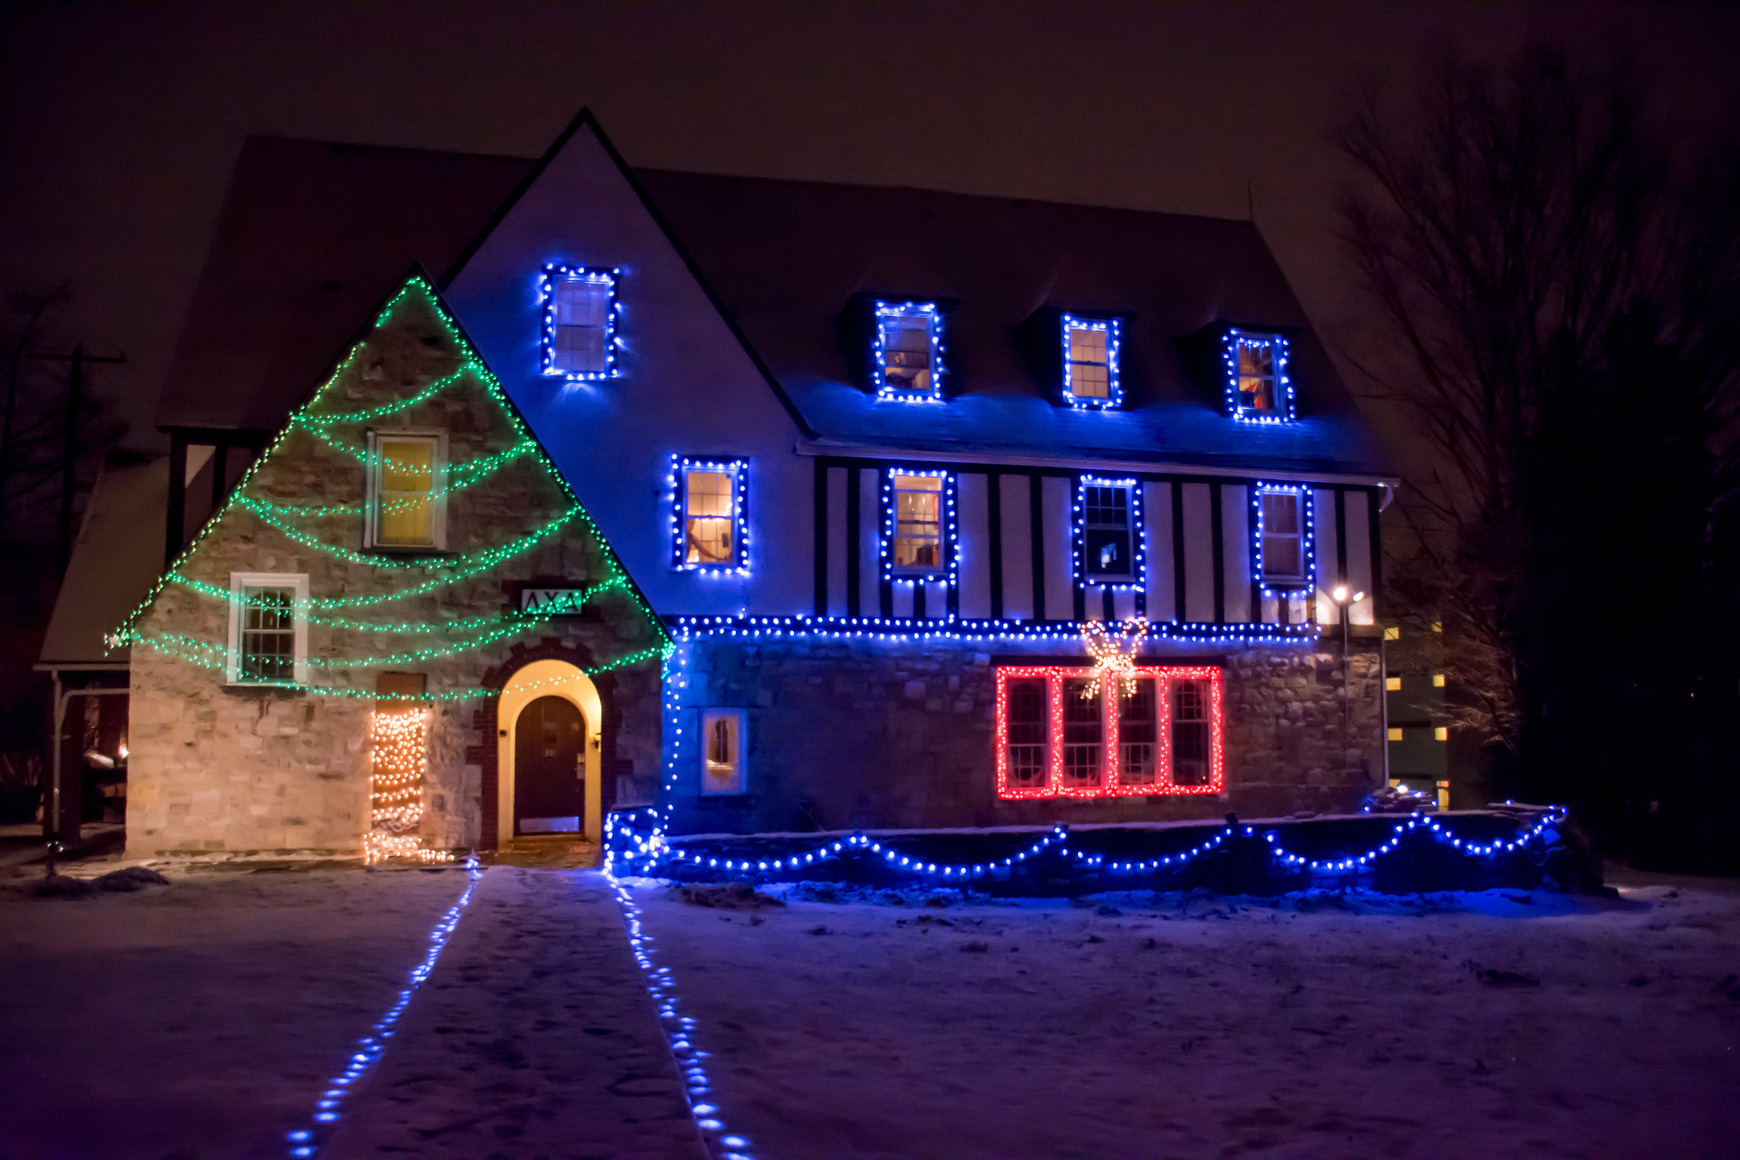 Fraternities Light Up With Holiday Spirit Onward State